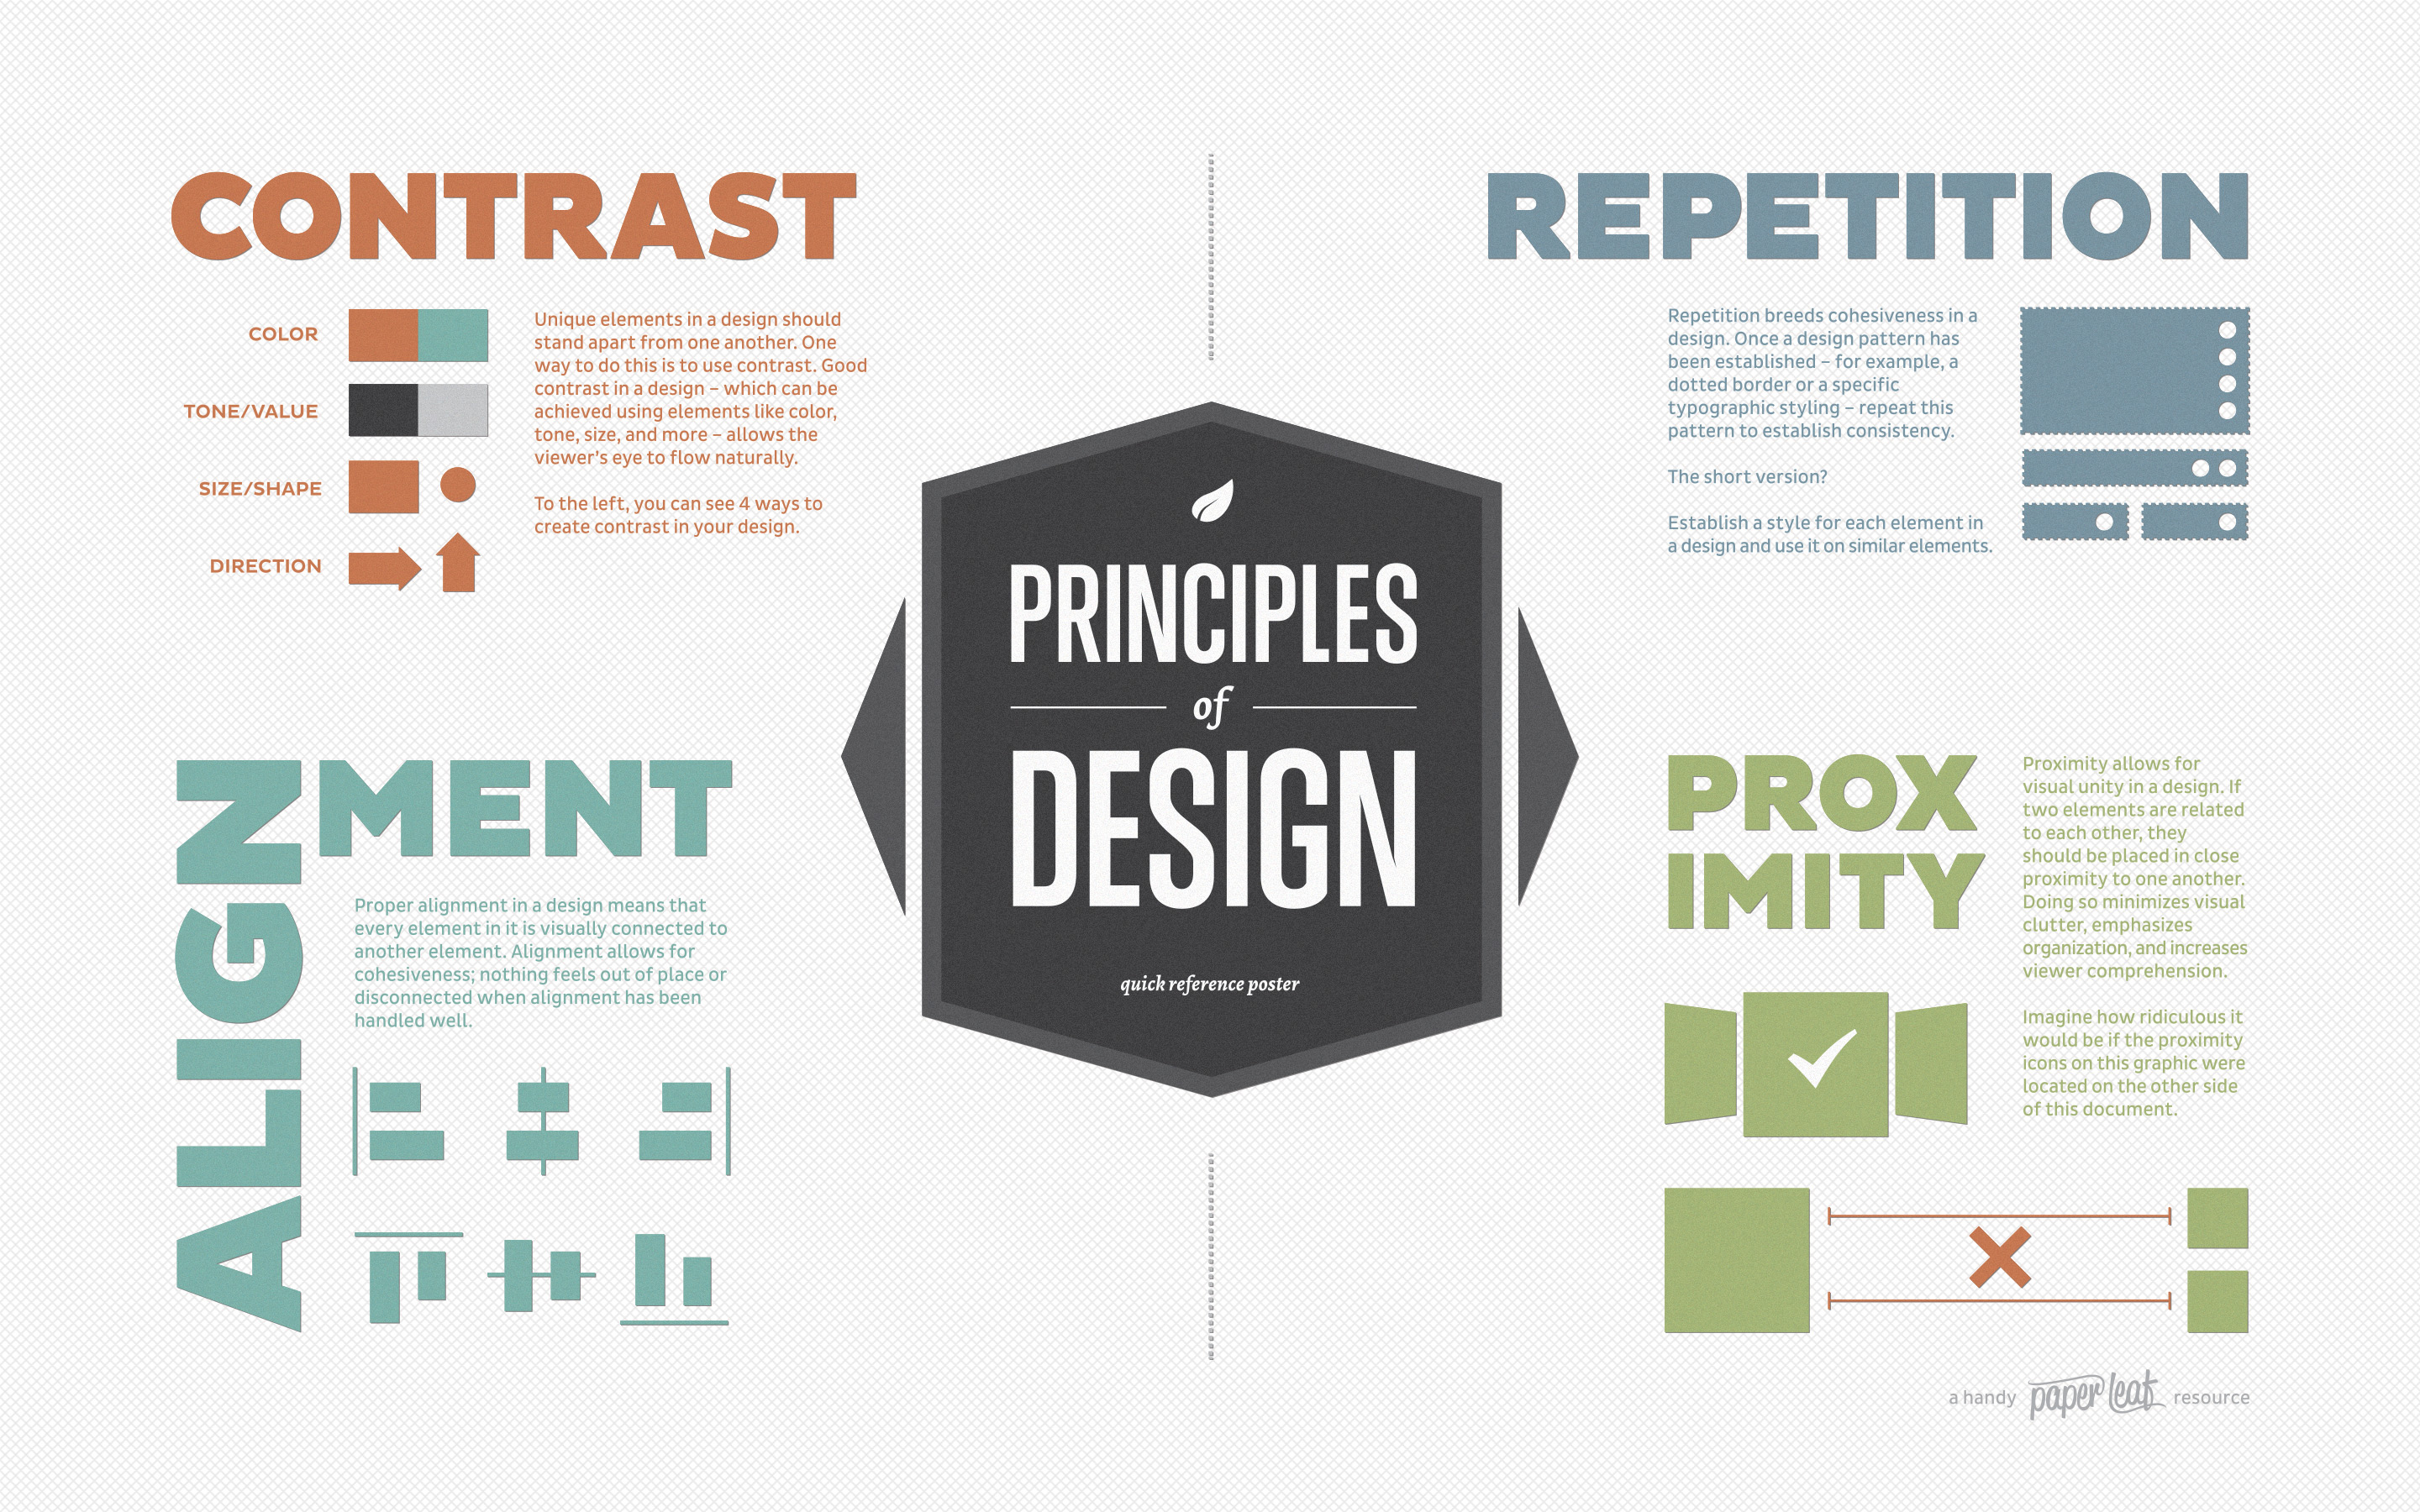 10 Principles Of Design Images